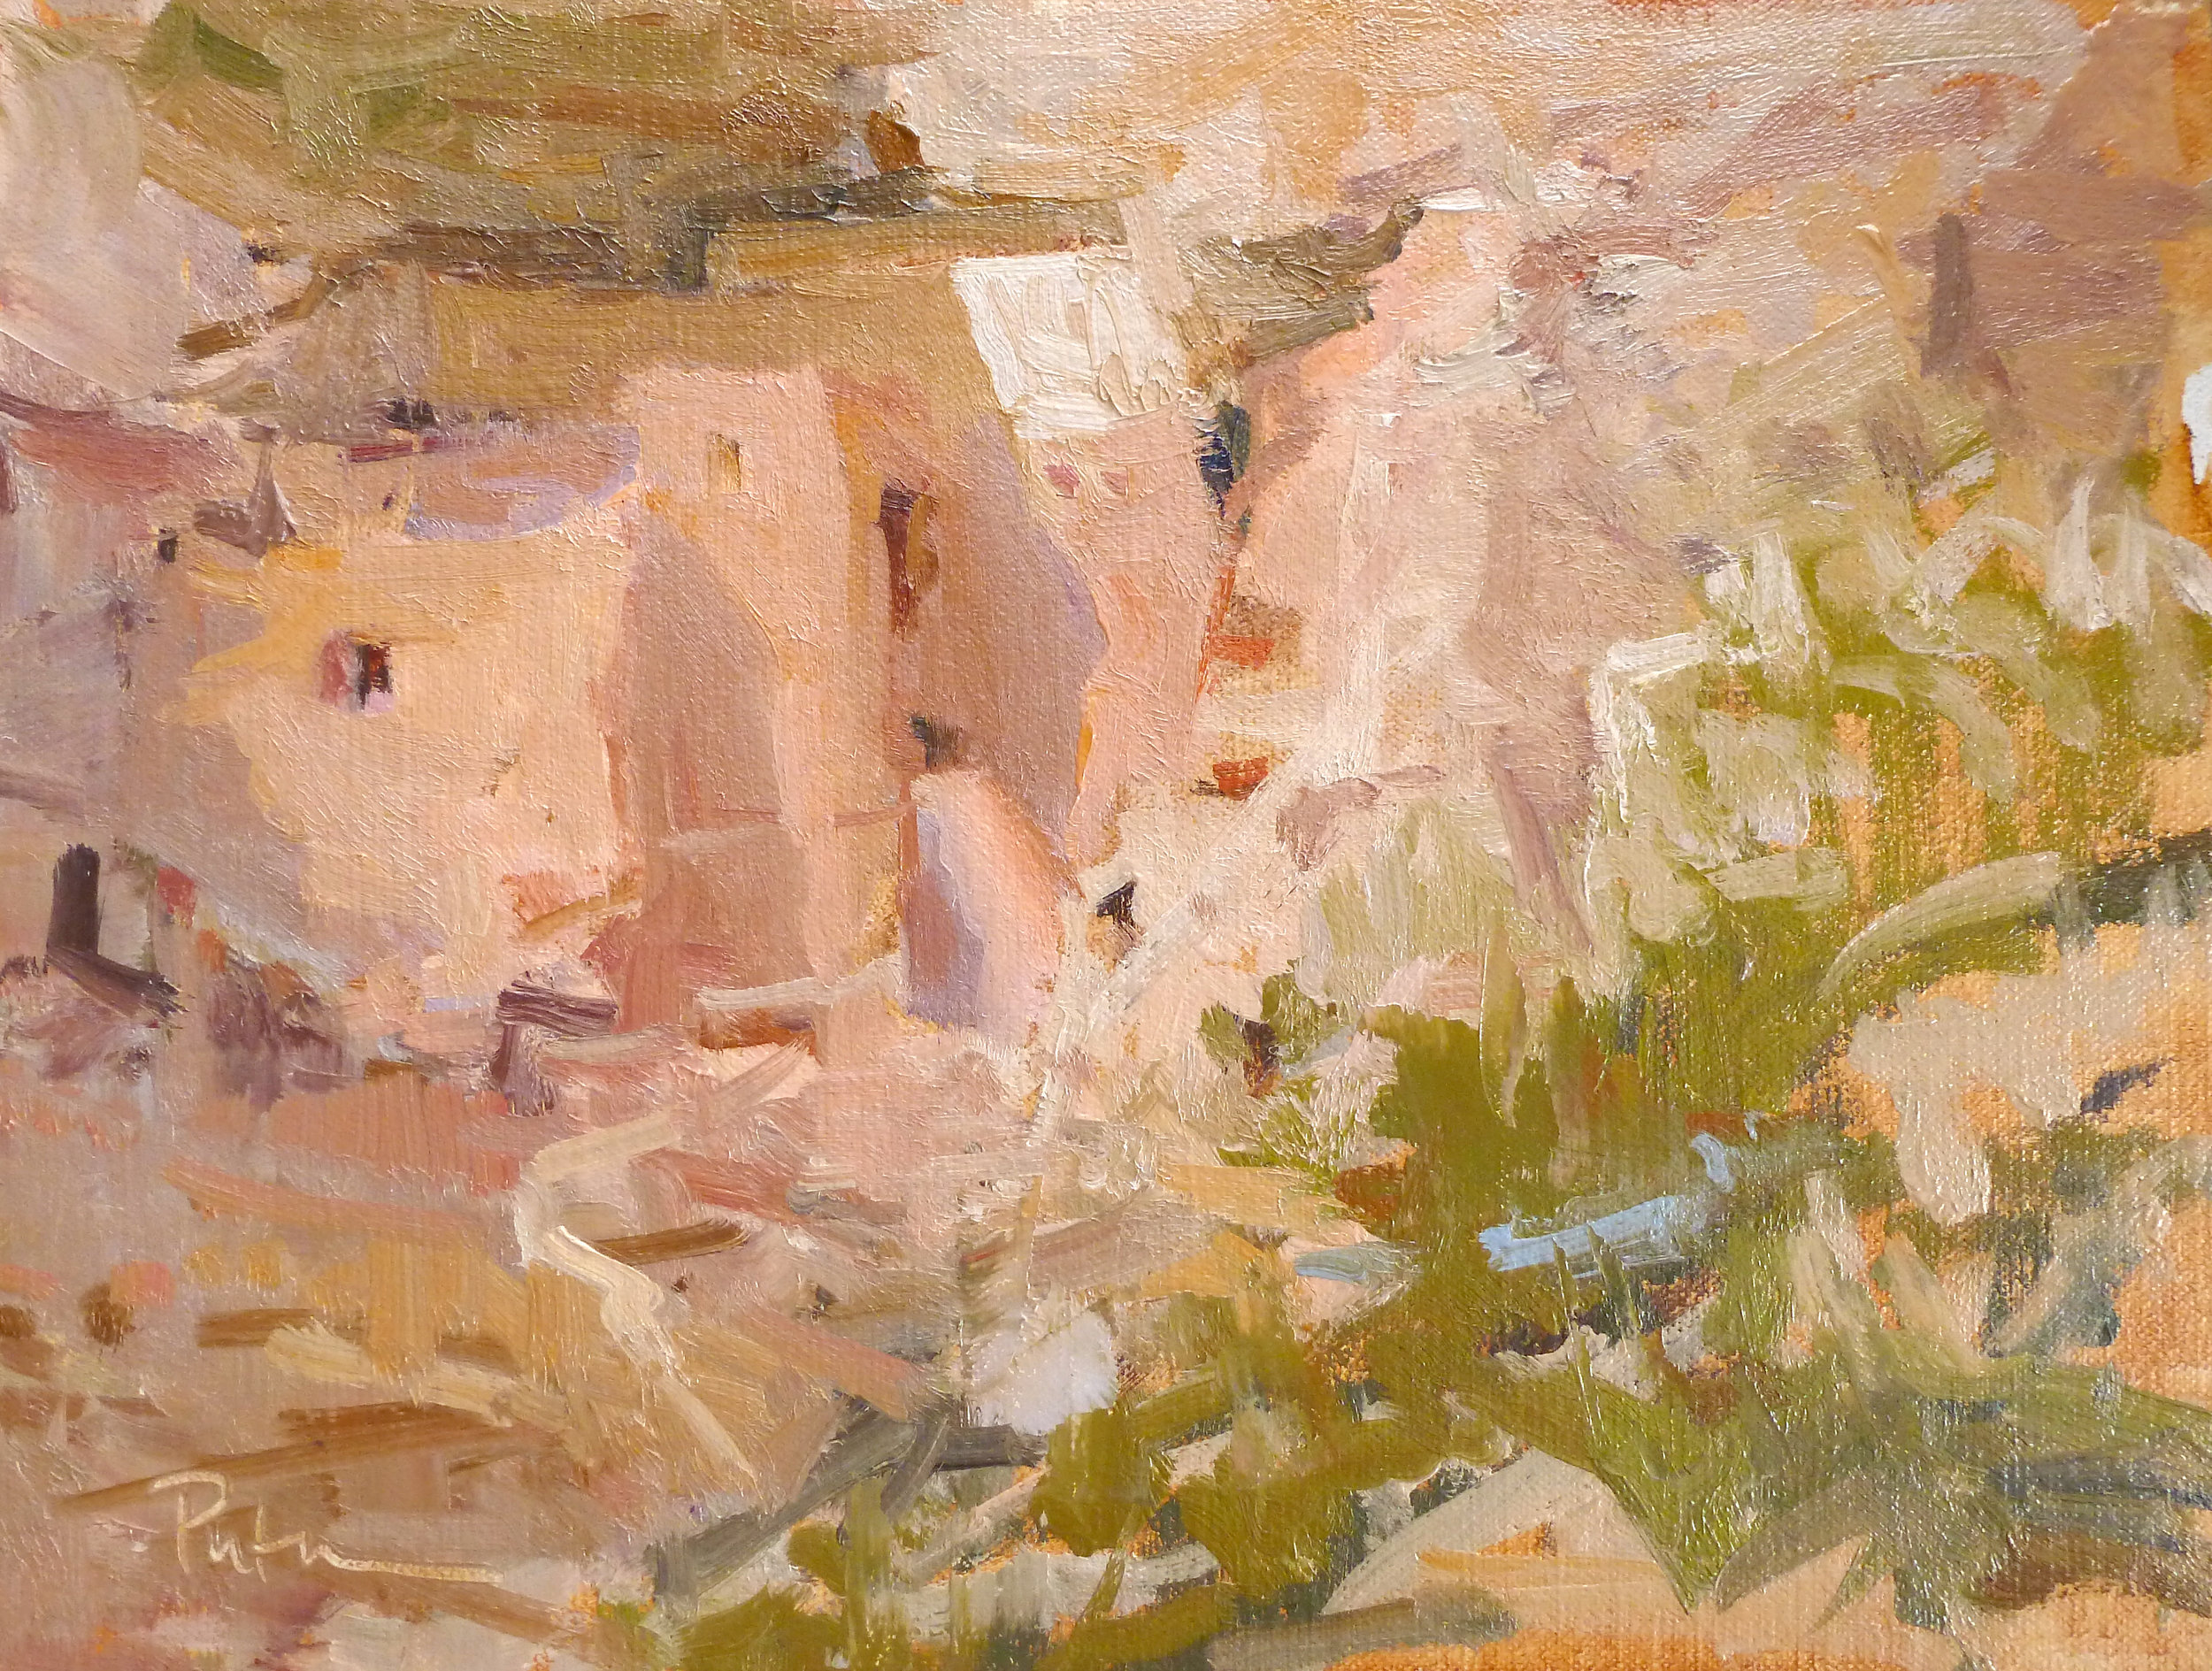 """""""Montezuma Slept Here,"""" by Lori Putnam, oil, 14 x 18 in. Private collection"""